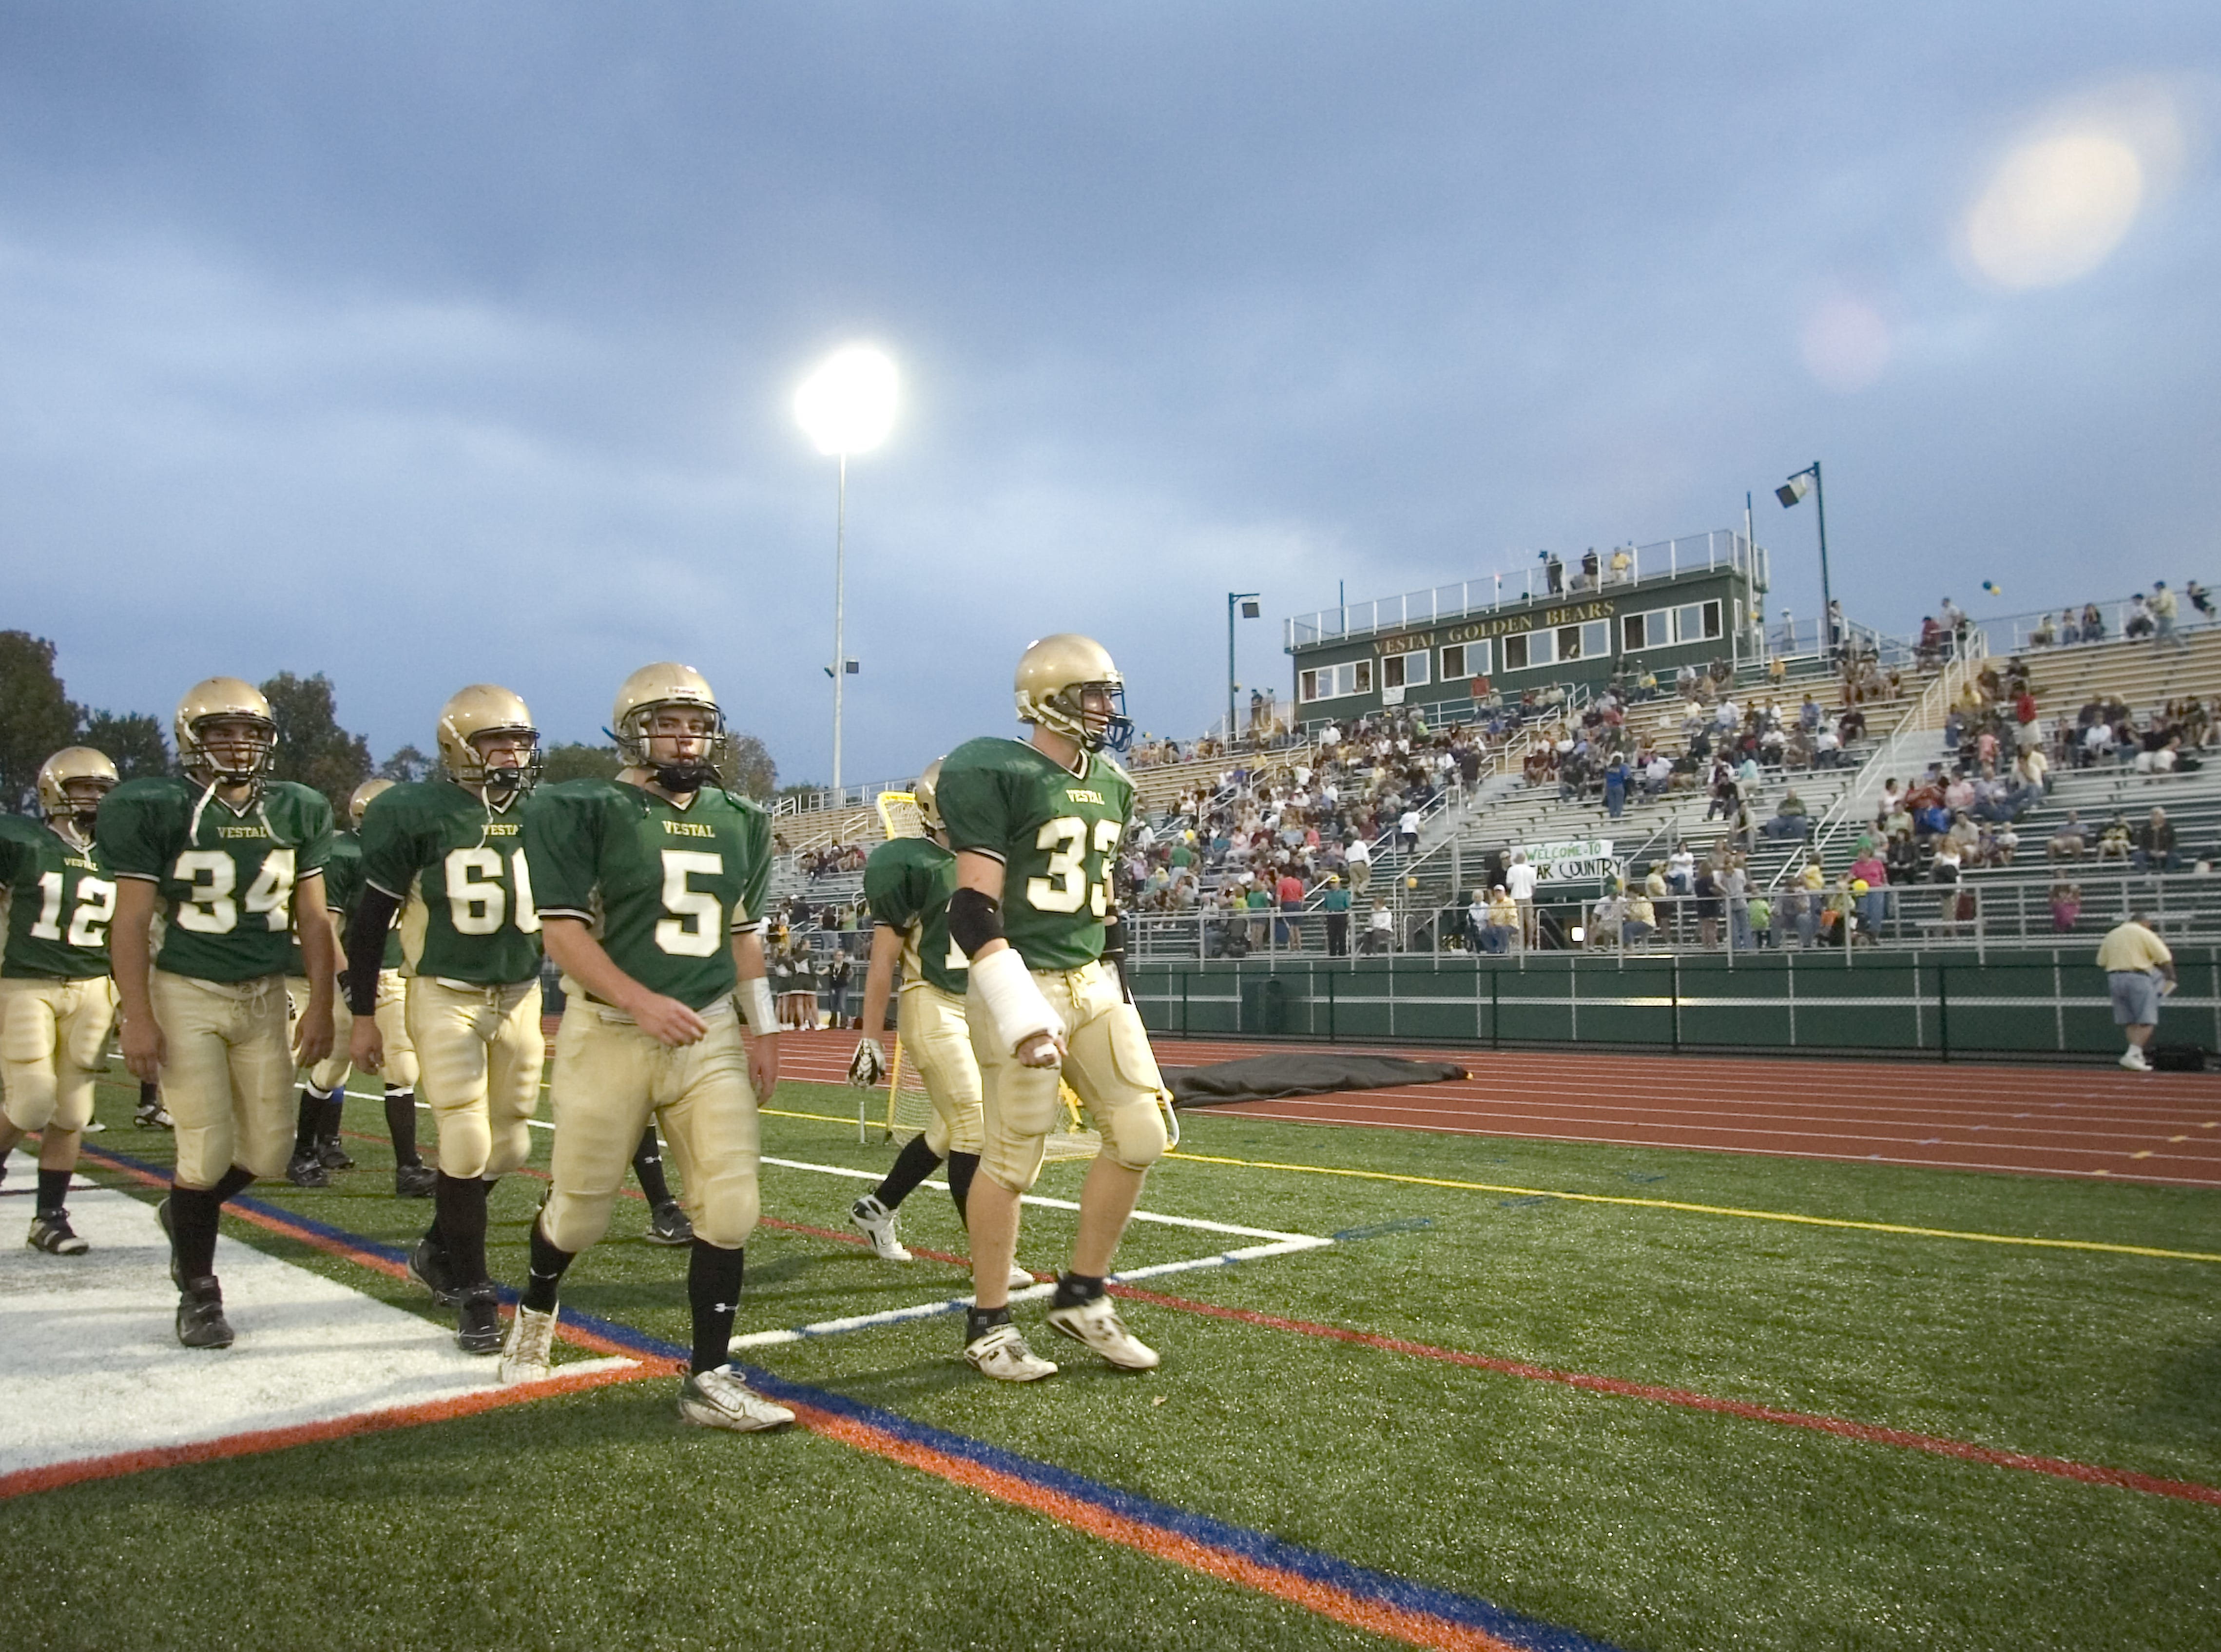 In 2007, Vestal High School football players head to the locker room prior to the start of the first home game of the season in the new stadium against Ithaca.